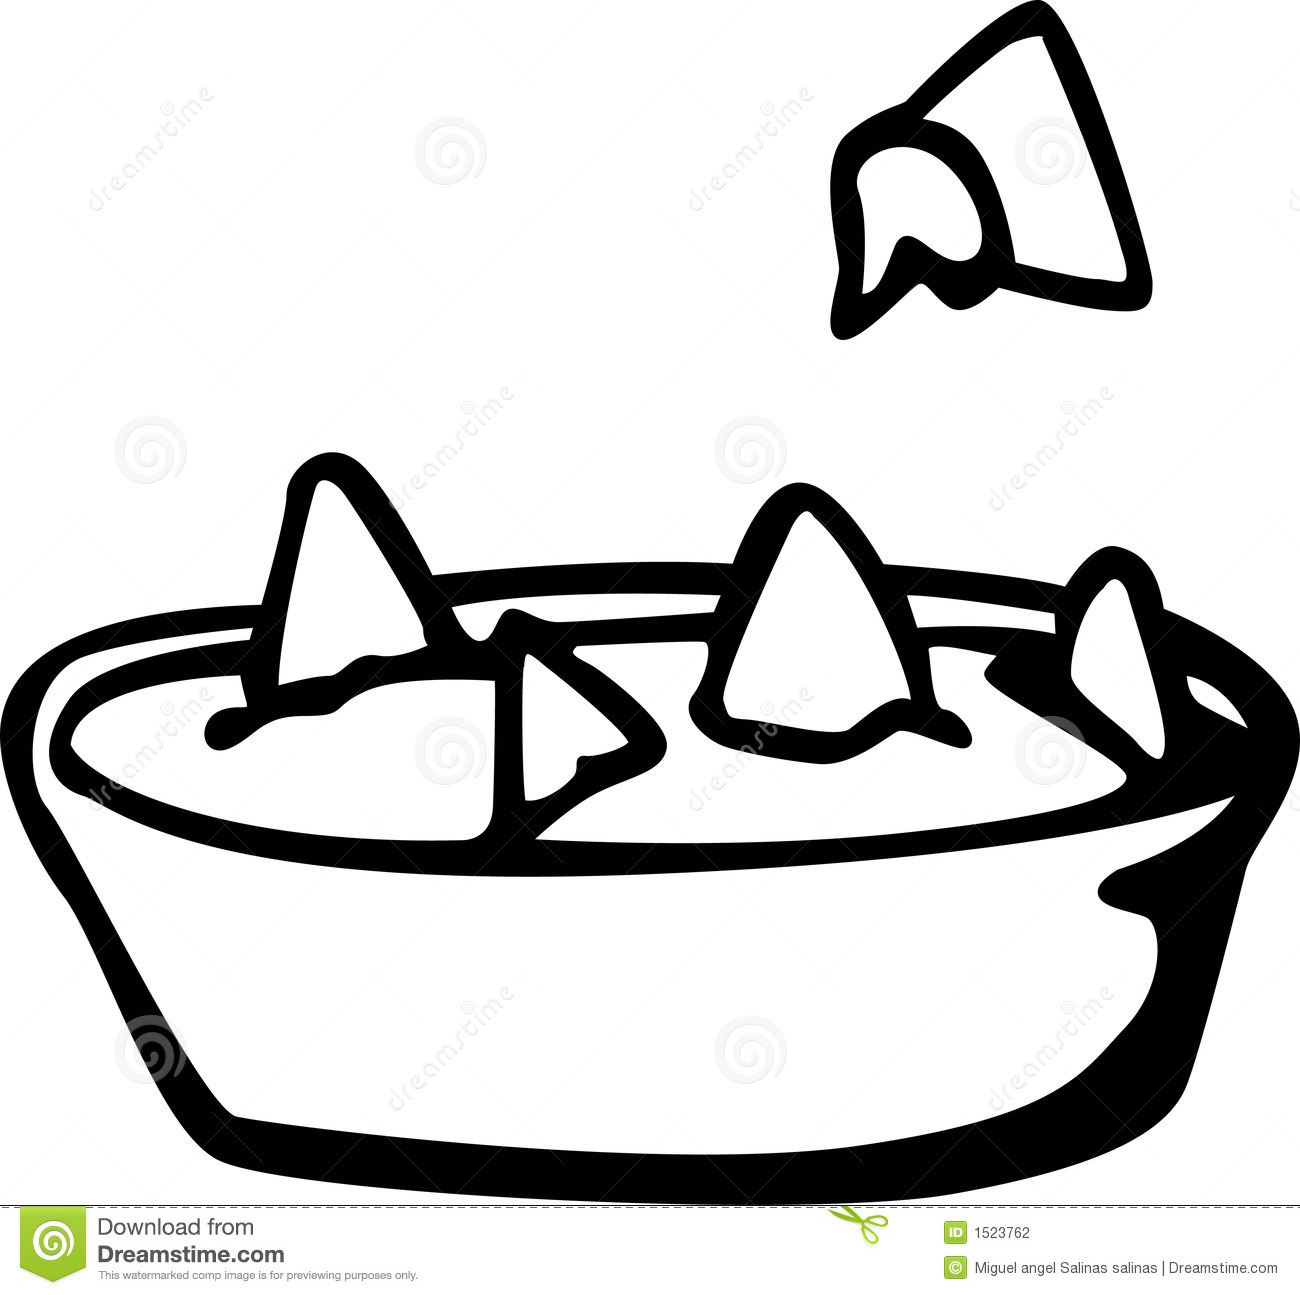 Nachos With Cheese Dish Vector Illustration Stock Vector